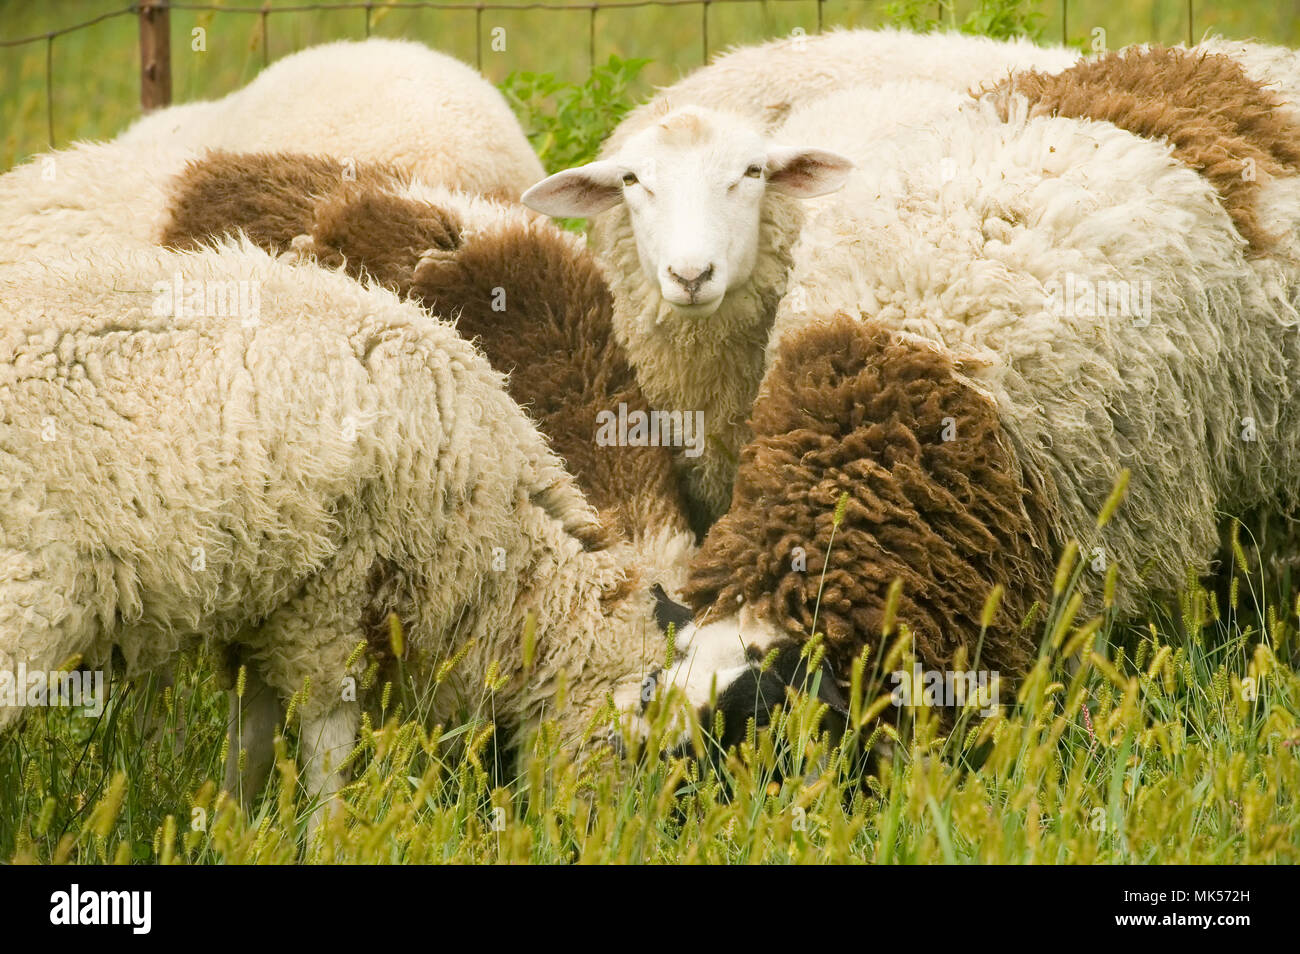 Galena, Illinois, USA.  Dorset sheep flock in a pasture.  One curious sheep is looking up; the rest are eating. - Stock Image